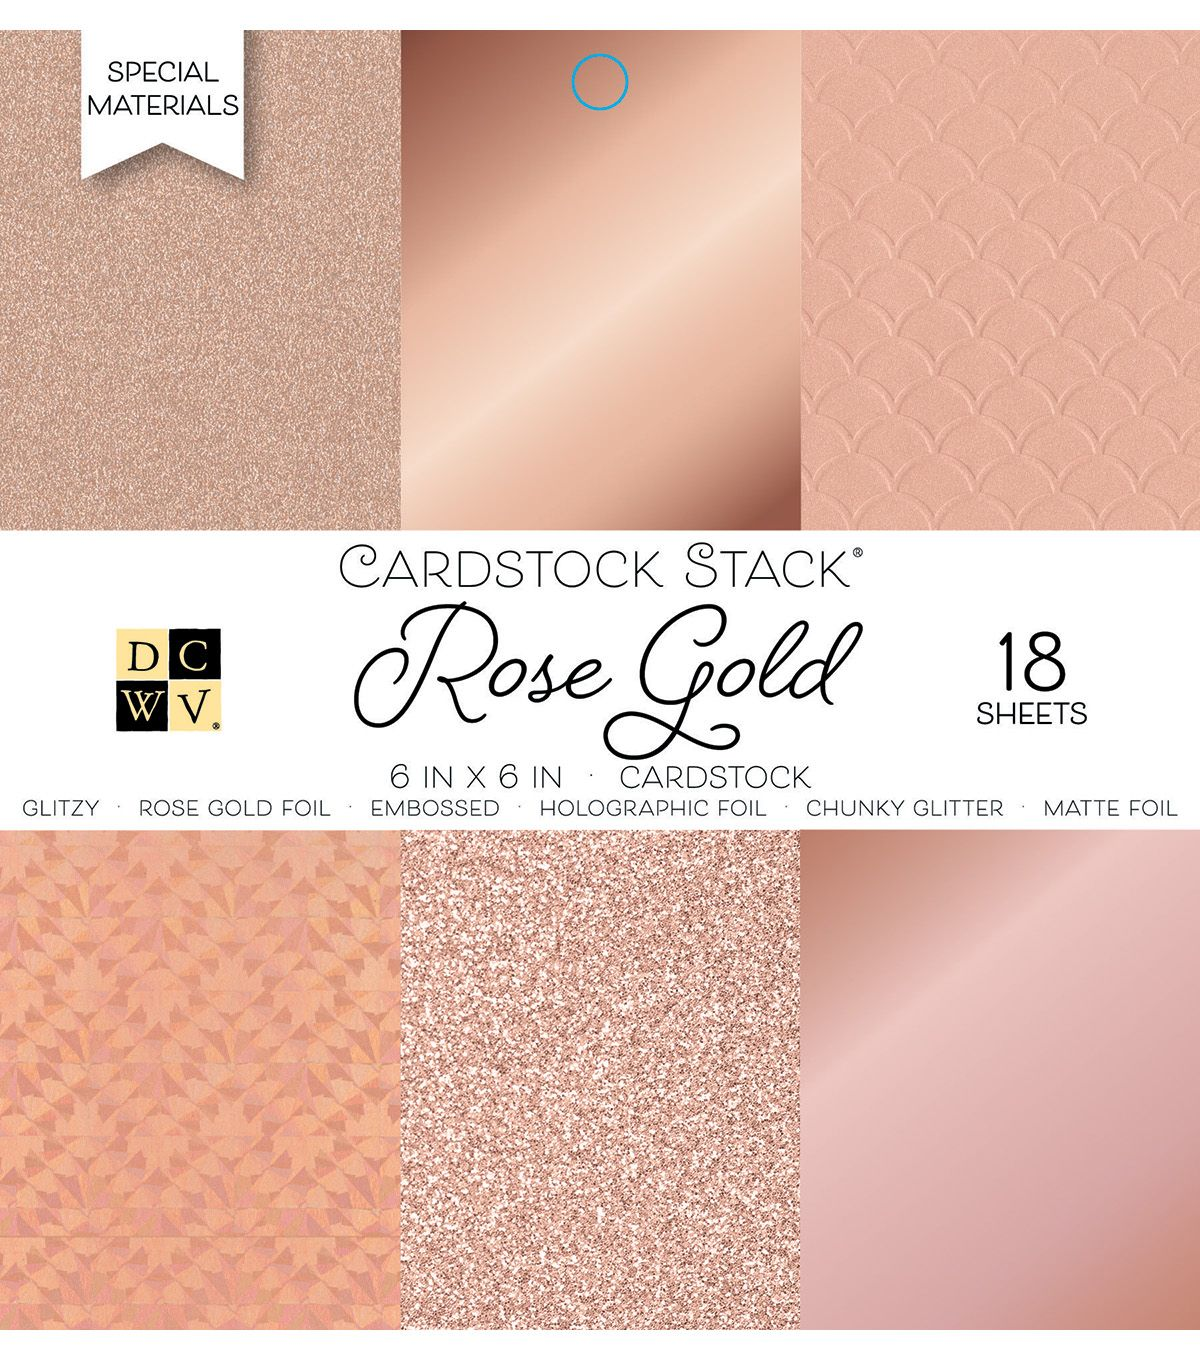 American Crafts 6 x 6 Inch Solid Rose Golds Glitter and Foil 18 Sheets Die Cuts with a View Mat Stacks 6 x 6